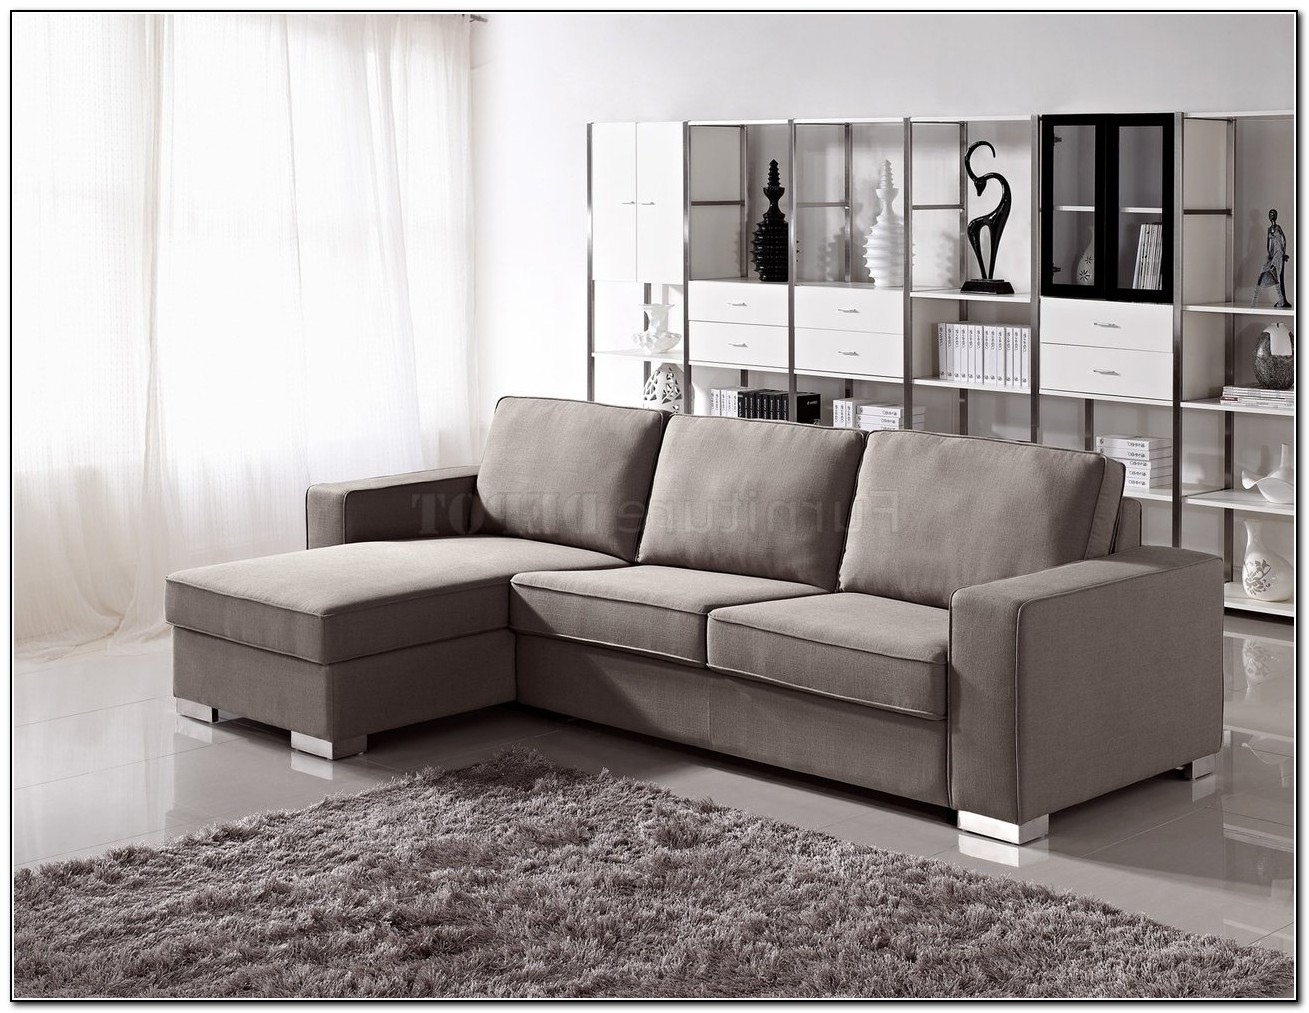 convertible sofa bed sectional low price set beds home design ideas